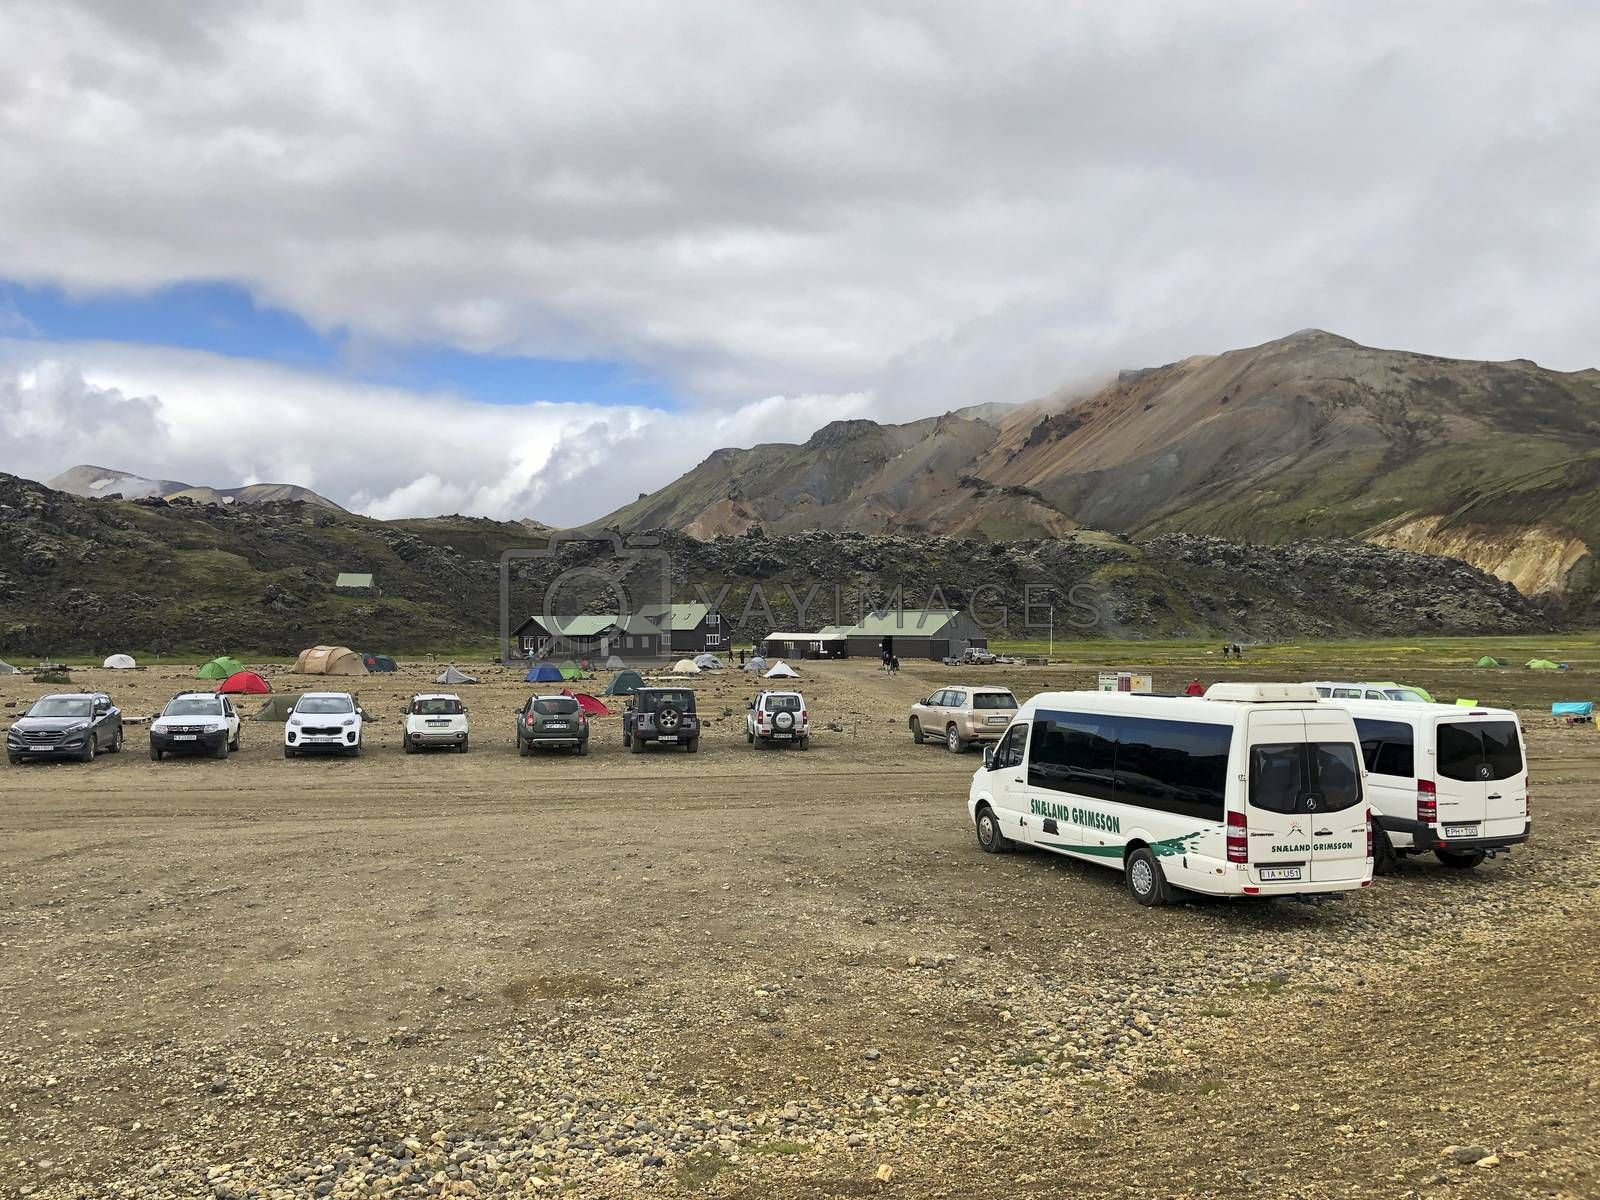 View at the Brennisteinsalda Camping in Iceland, part of the Laugavegur hiking trail. Travel and tourism.